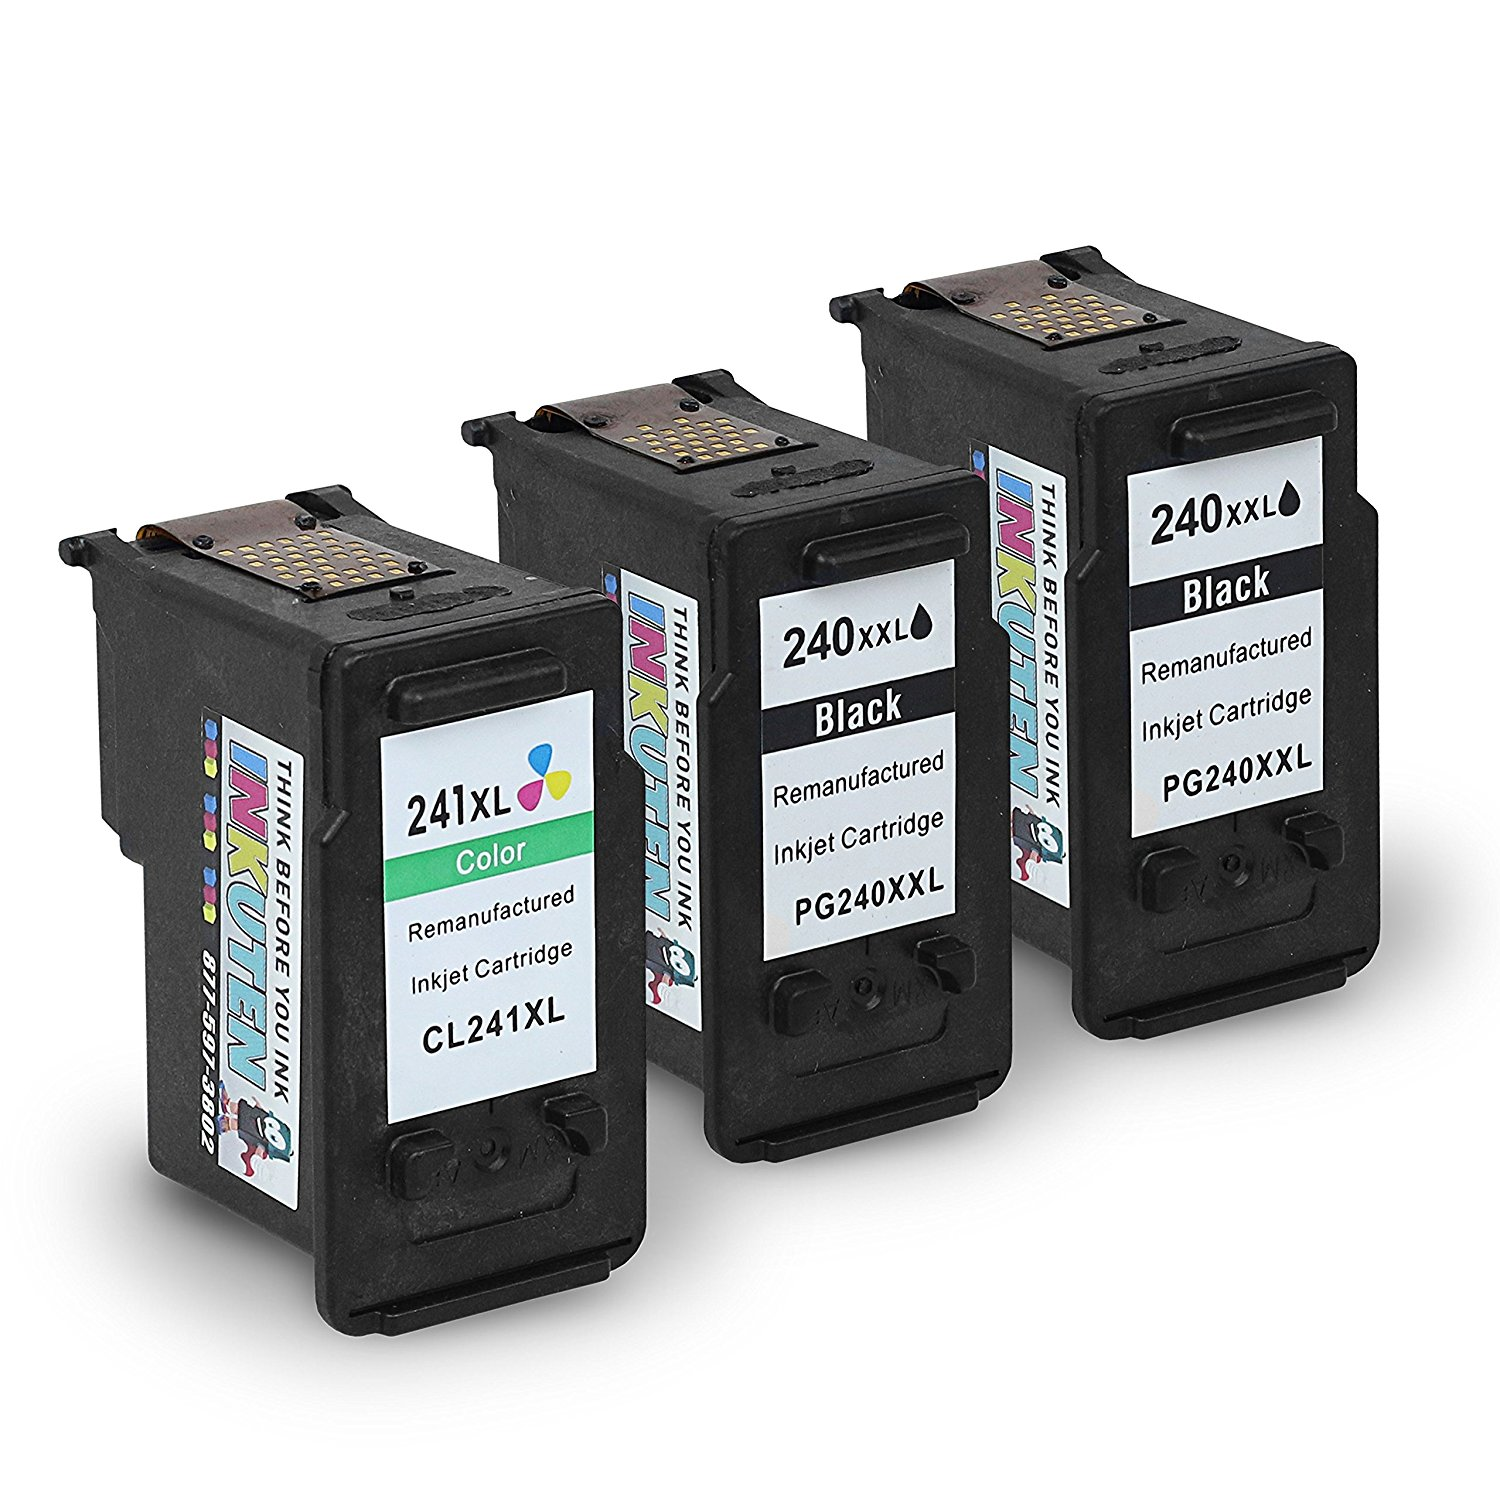 INKUTEN (TM) Remanufactured Ink Cartridge Replacement For Canon PG-240XXL CL-241XL Extra High Yield 5206B001 5208B001 (2 Black, 1 Color) 3-Pack